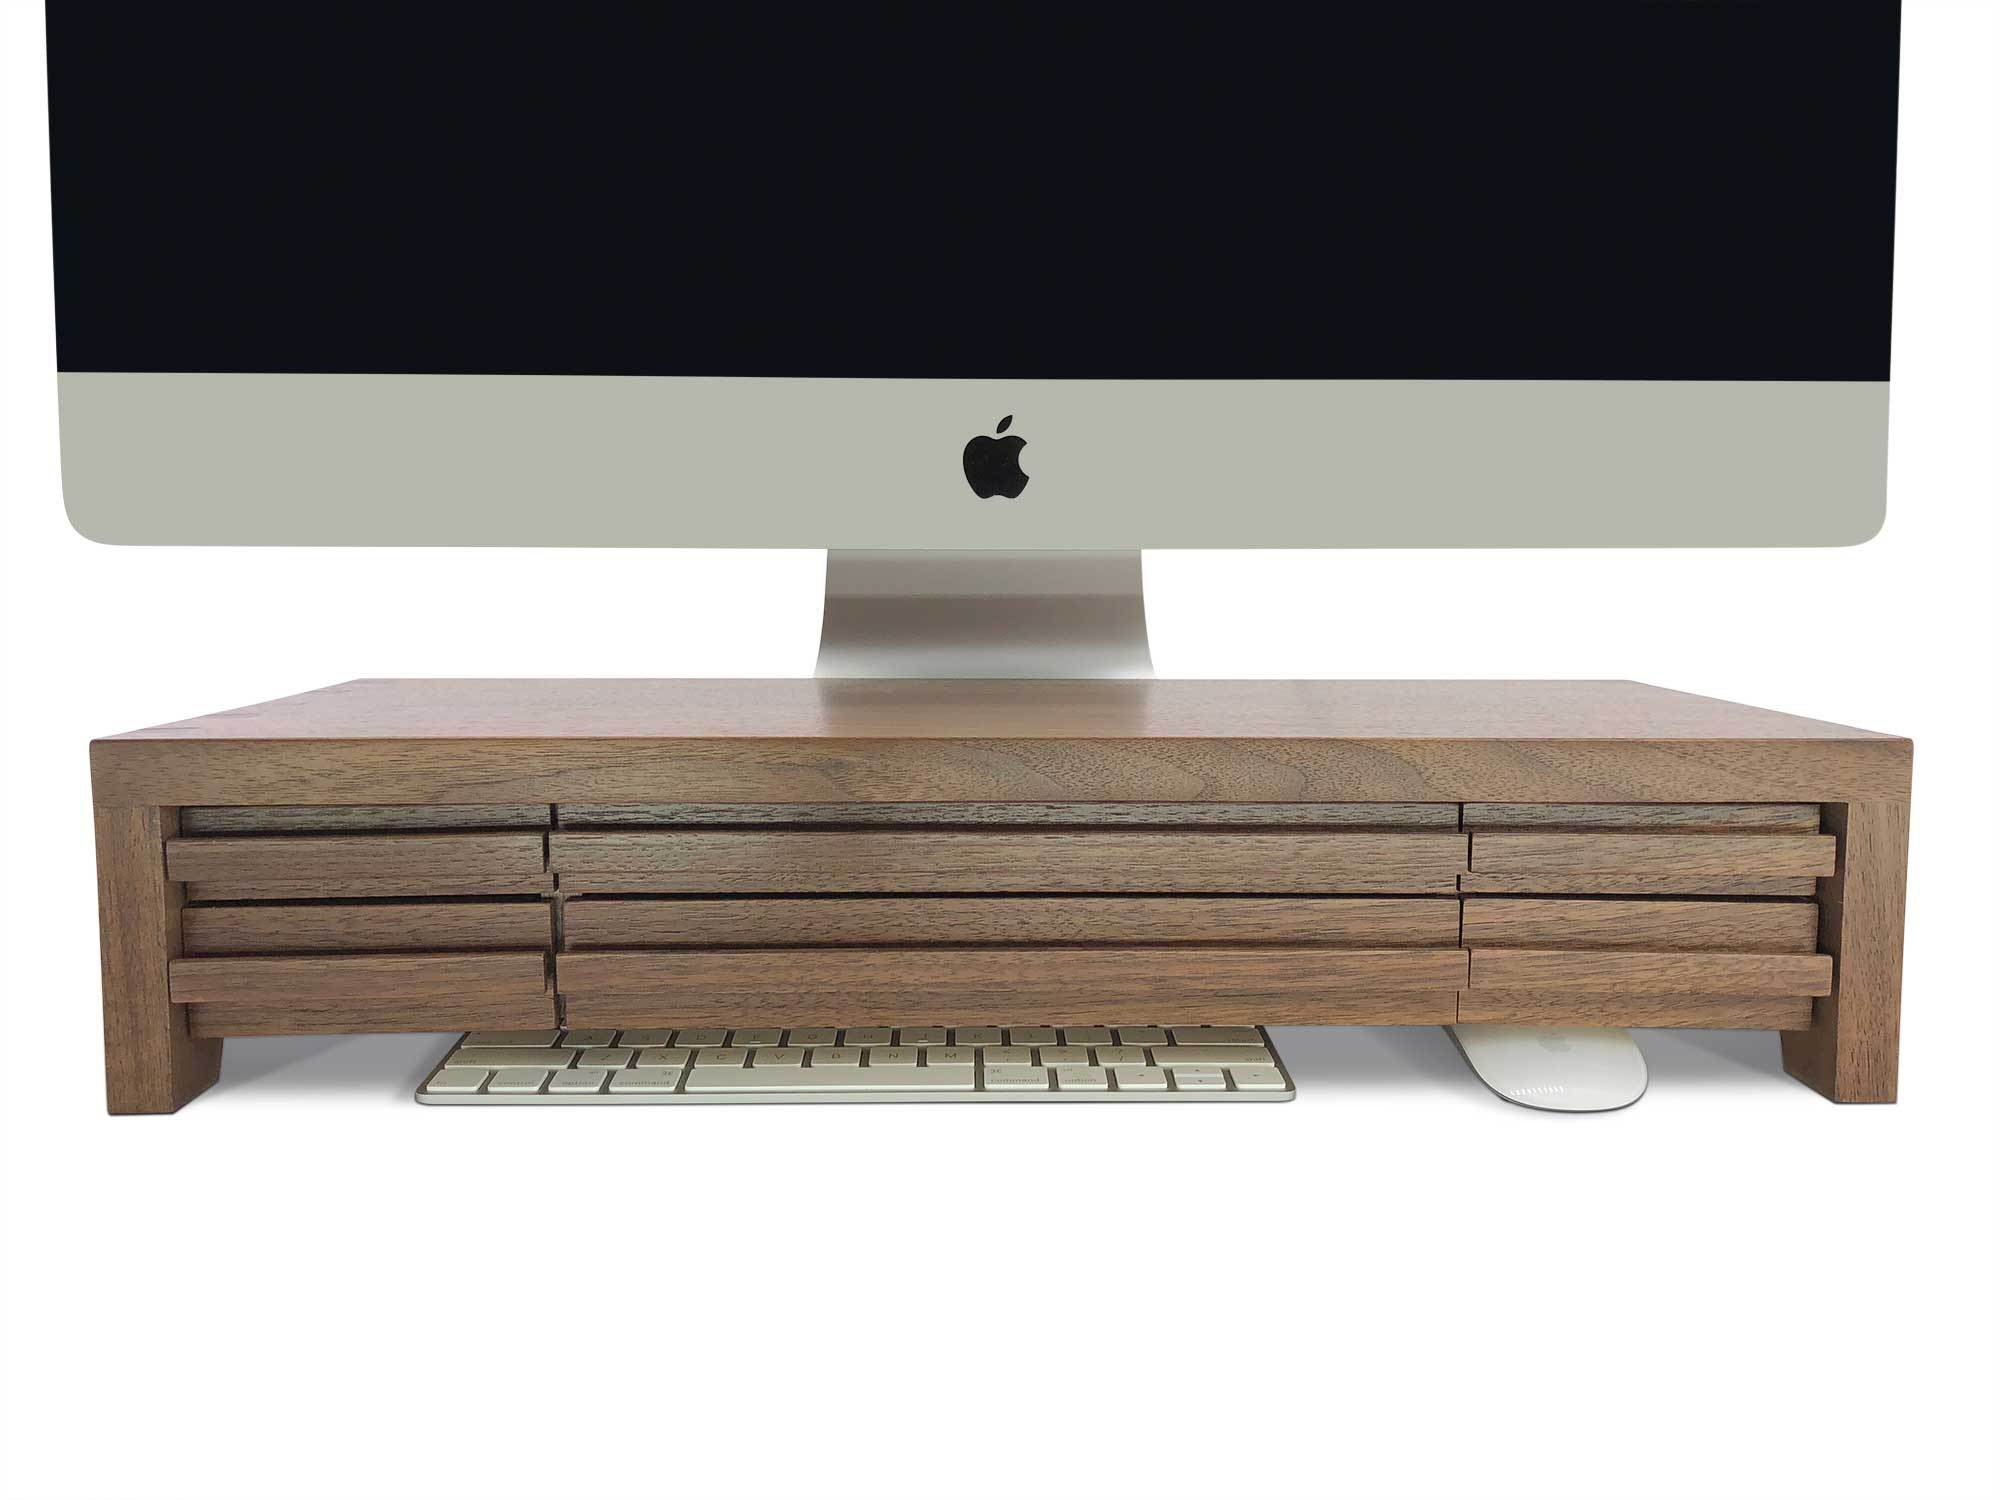 PLANET 6 Walnut –Urban Wood Desktop Computer Stand